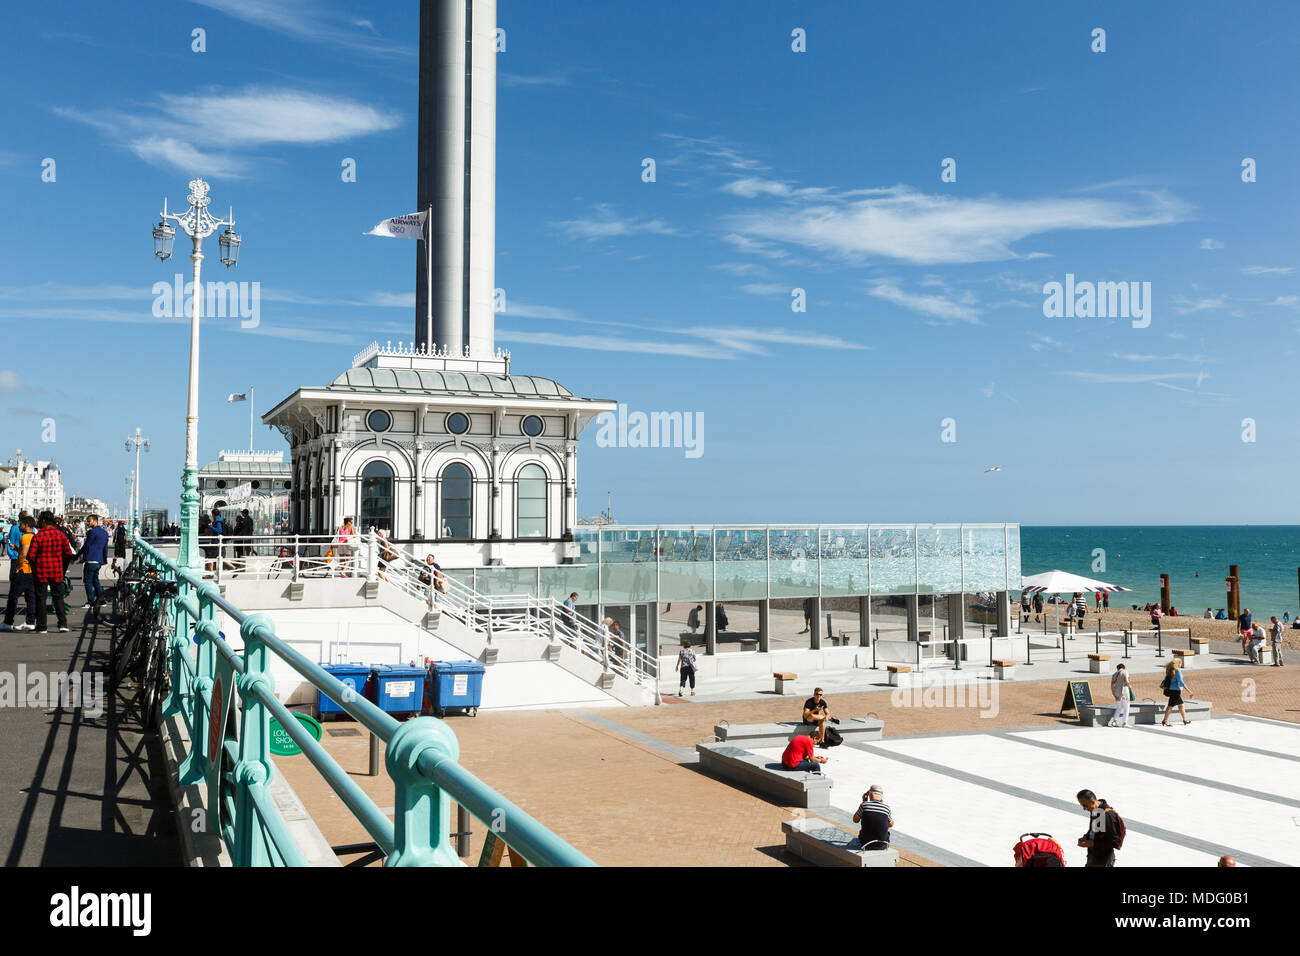 Spire of British Airways i360 observation tower in Brighton, gull in the rays - Stock Image